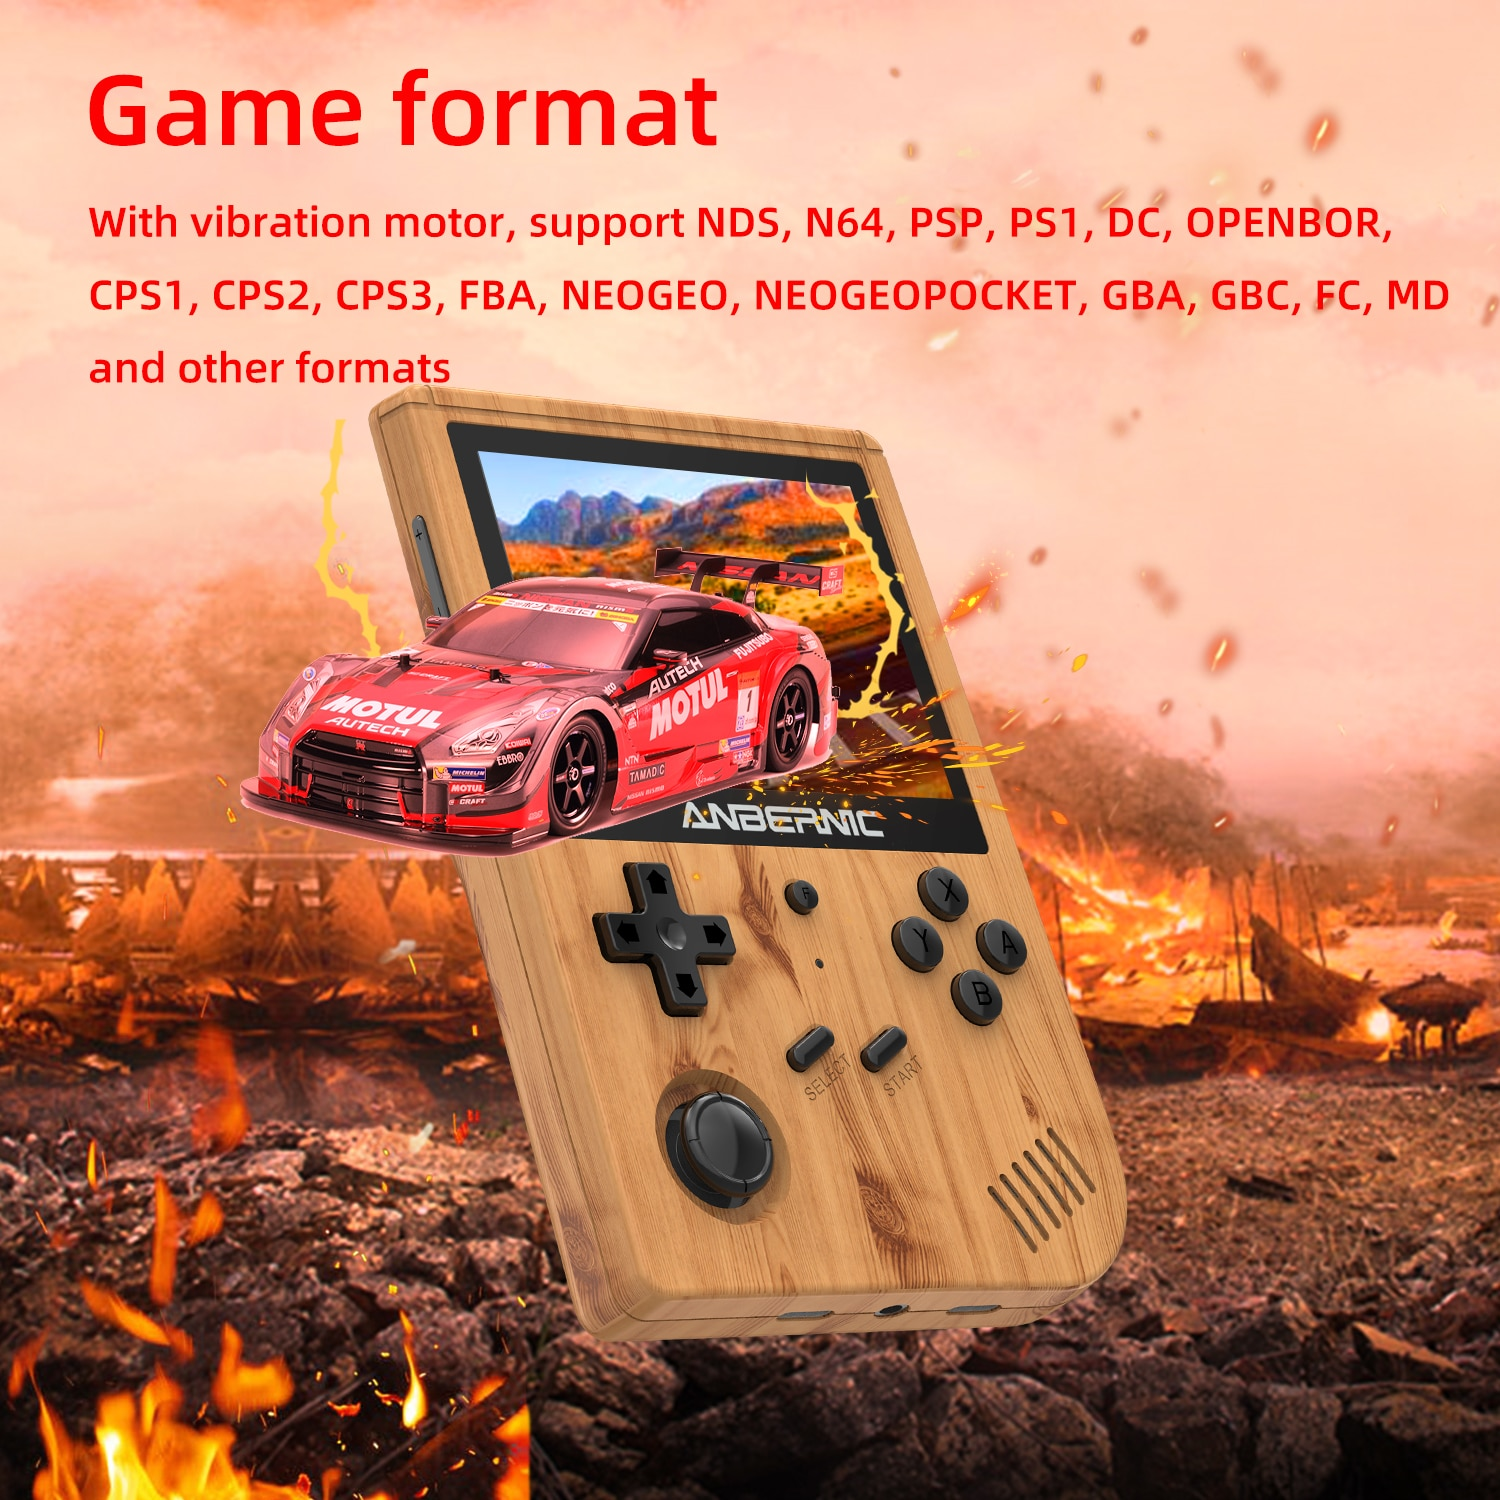 ANBERNIC New RG351V Retro Games Built-in 16G RK3326 Open Source 3.5 INCH 640*480 handheld game console Emulator For PS1 kid 256G enlarge